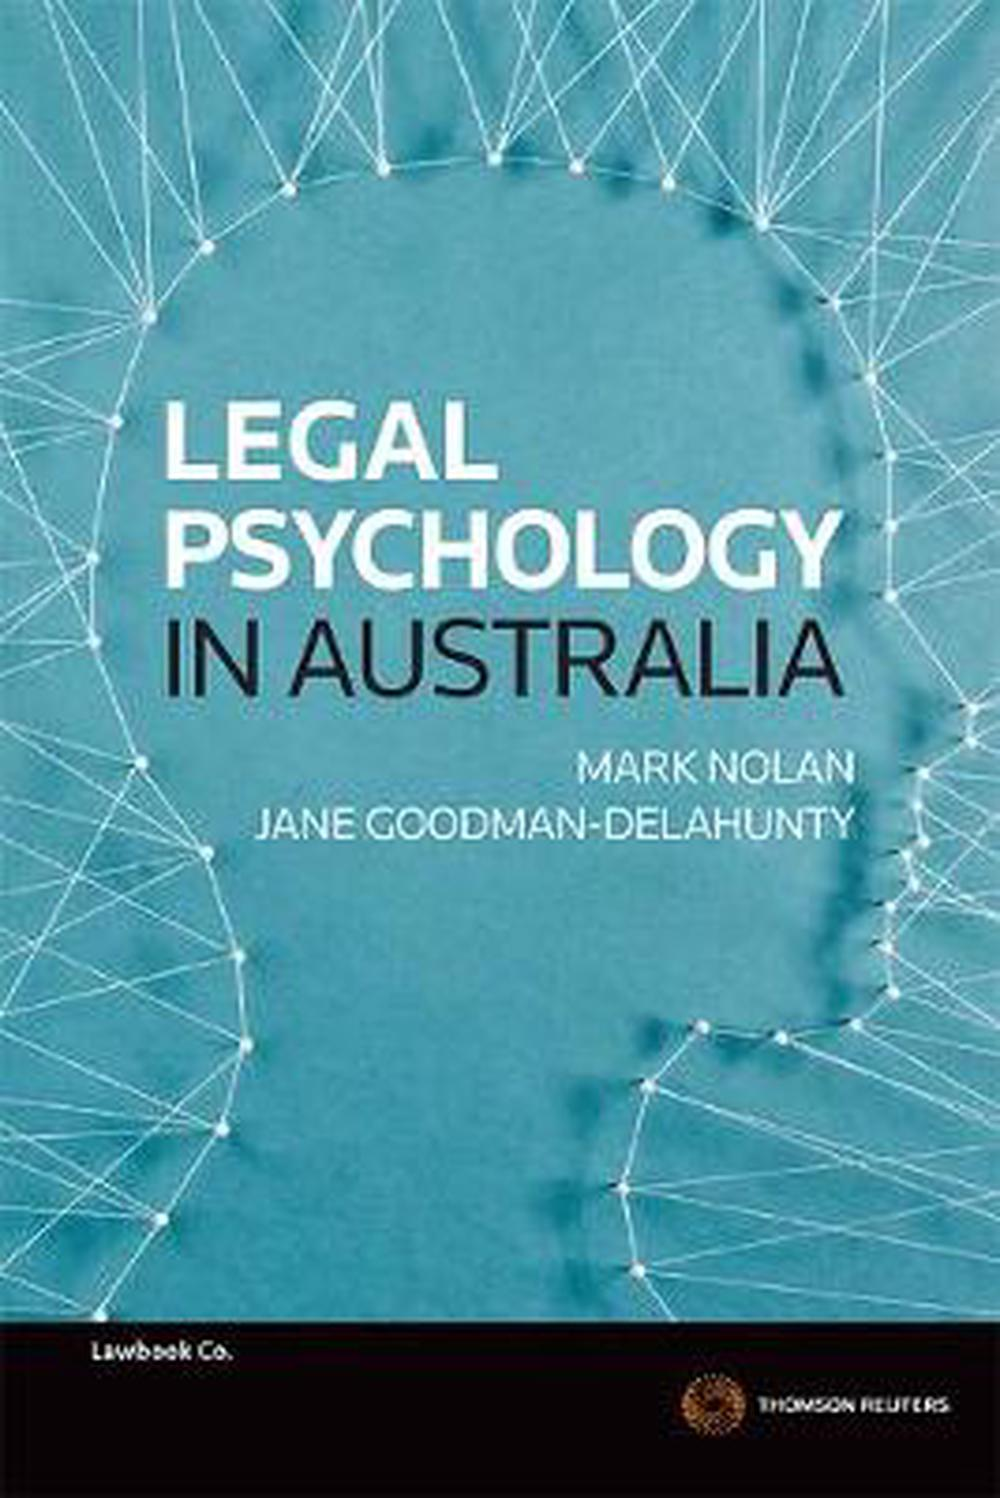 Legal Psychology in Australia